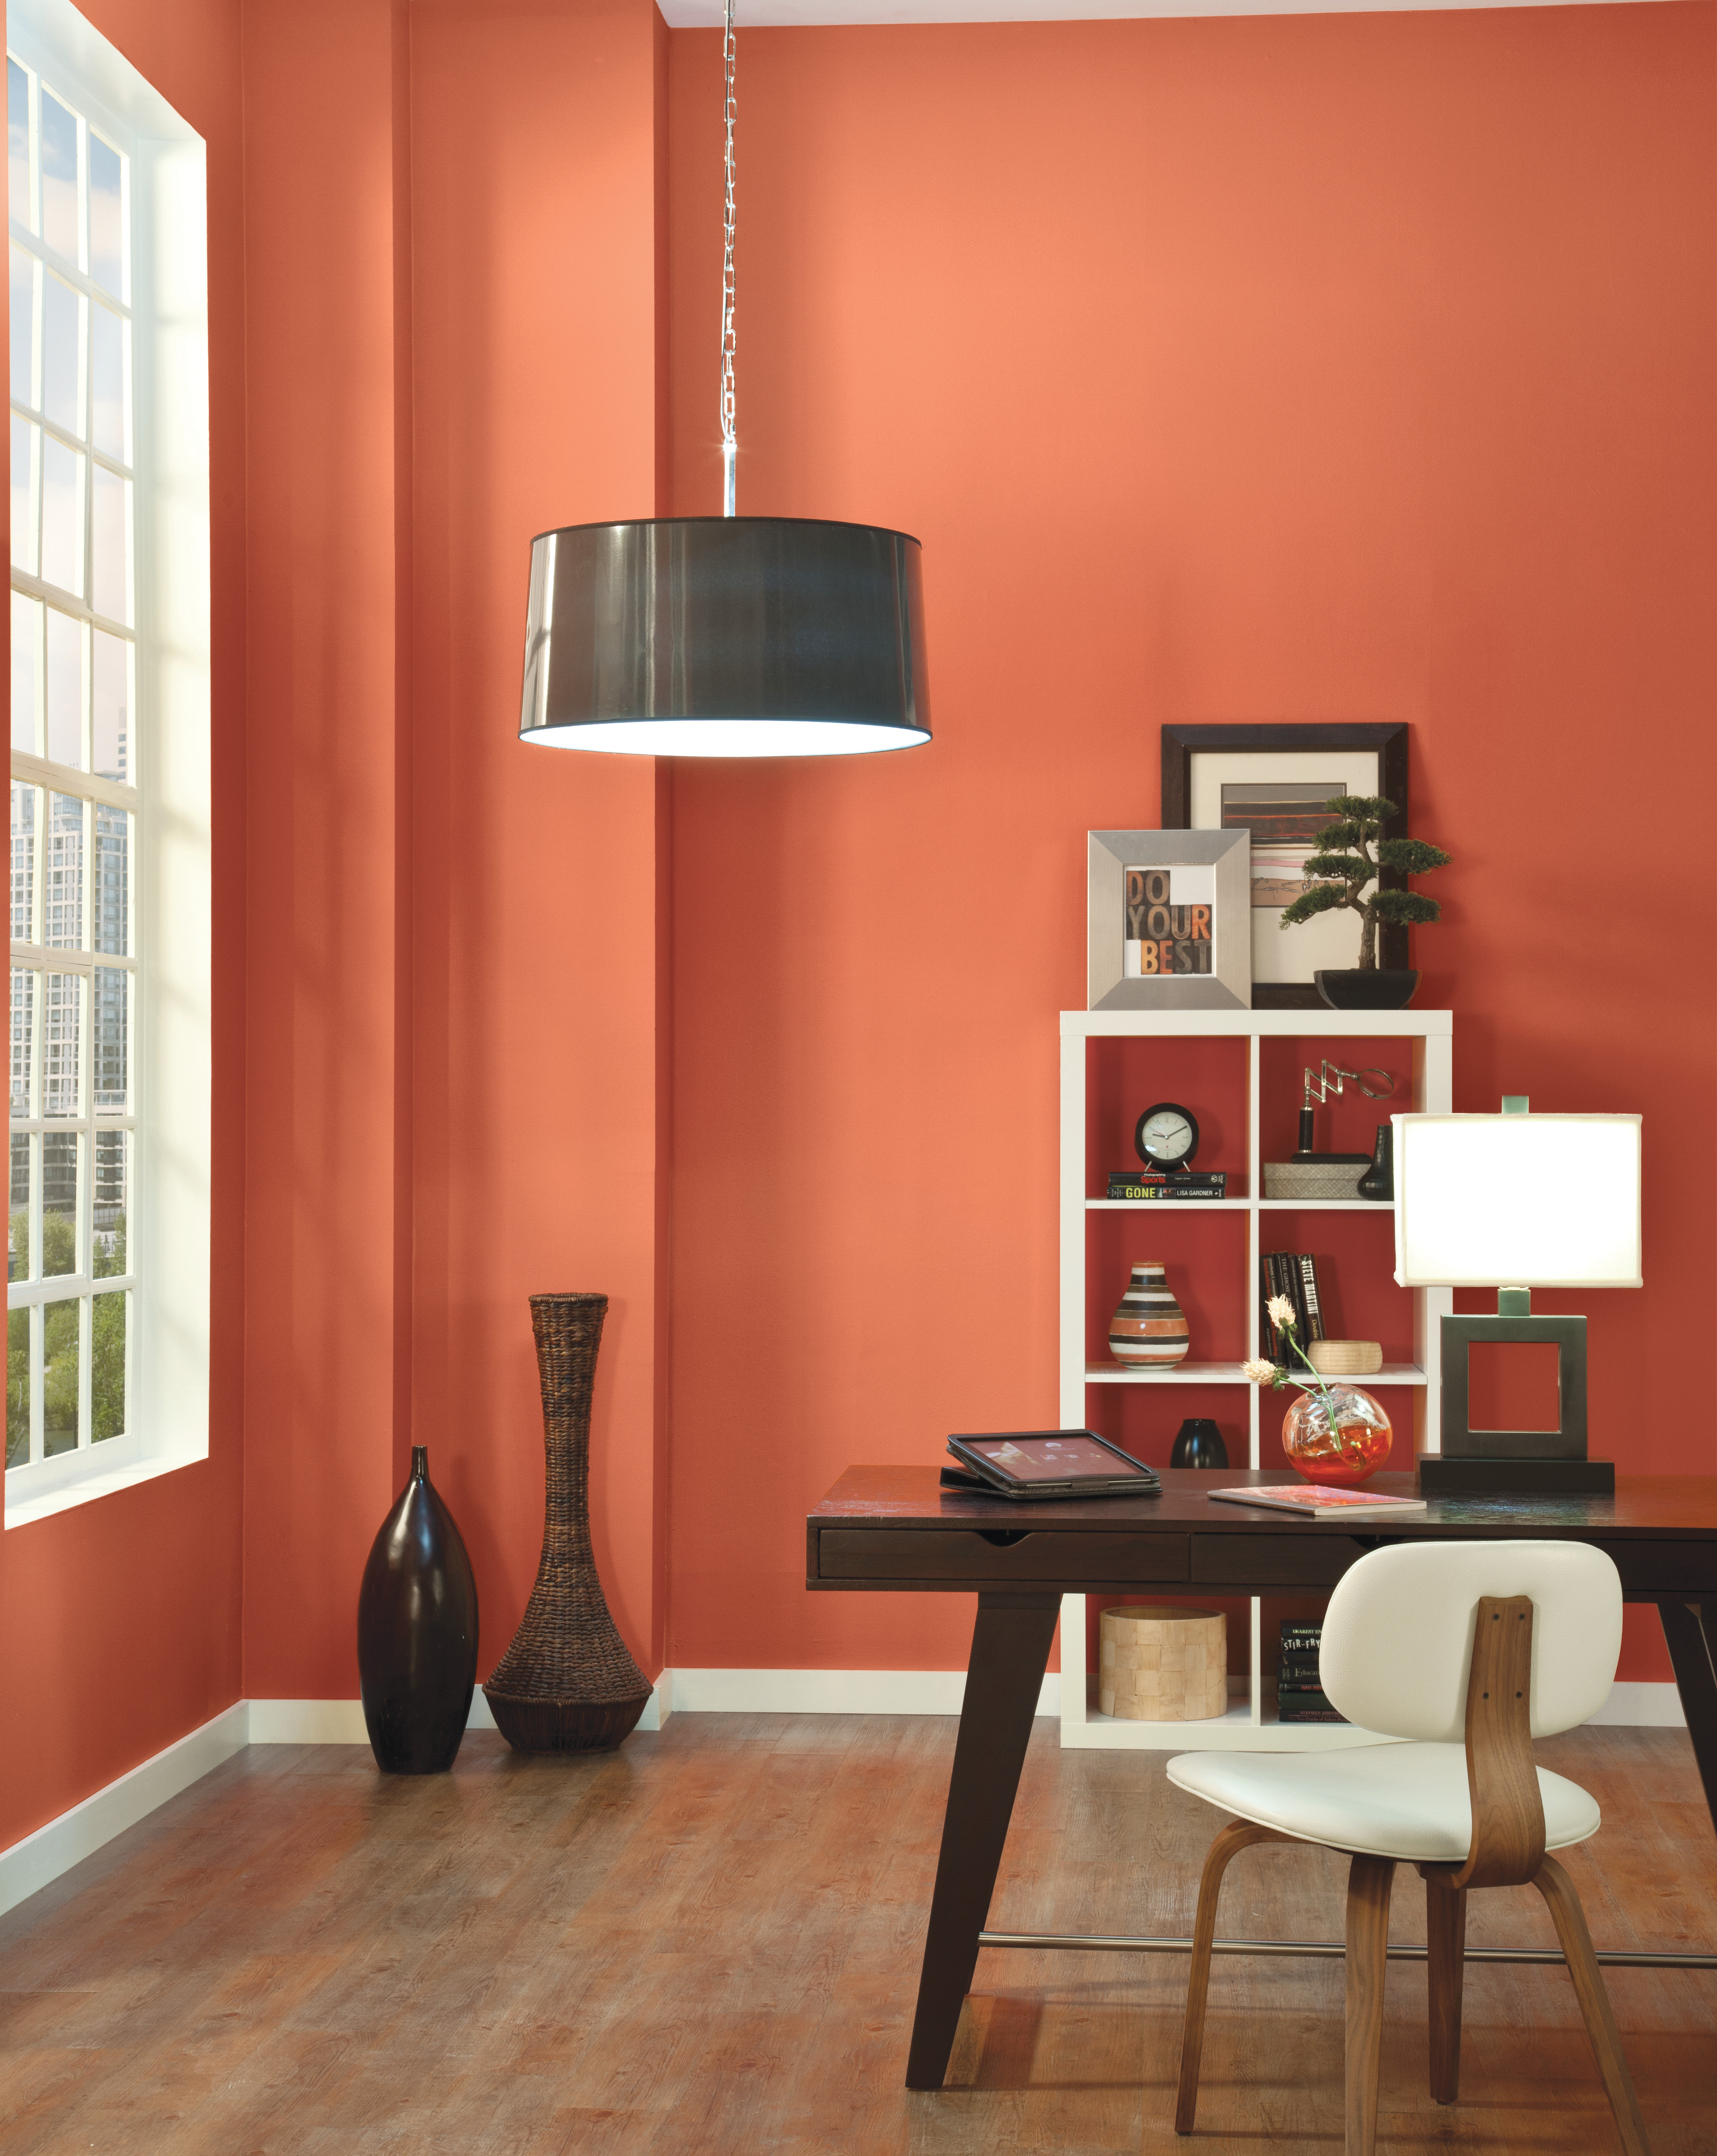 Southern Exposed Orange Wall with Warm Tones